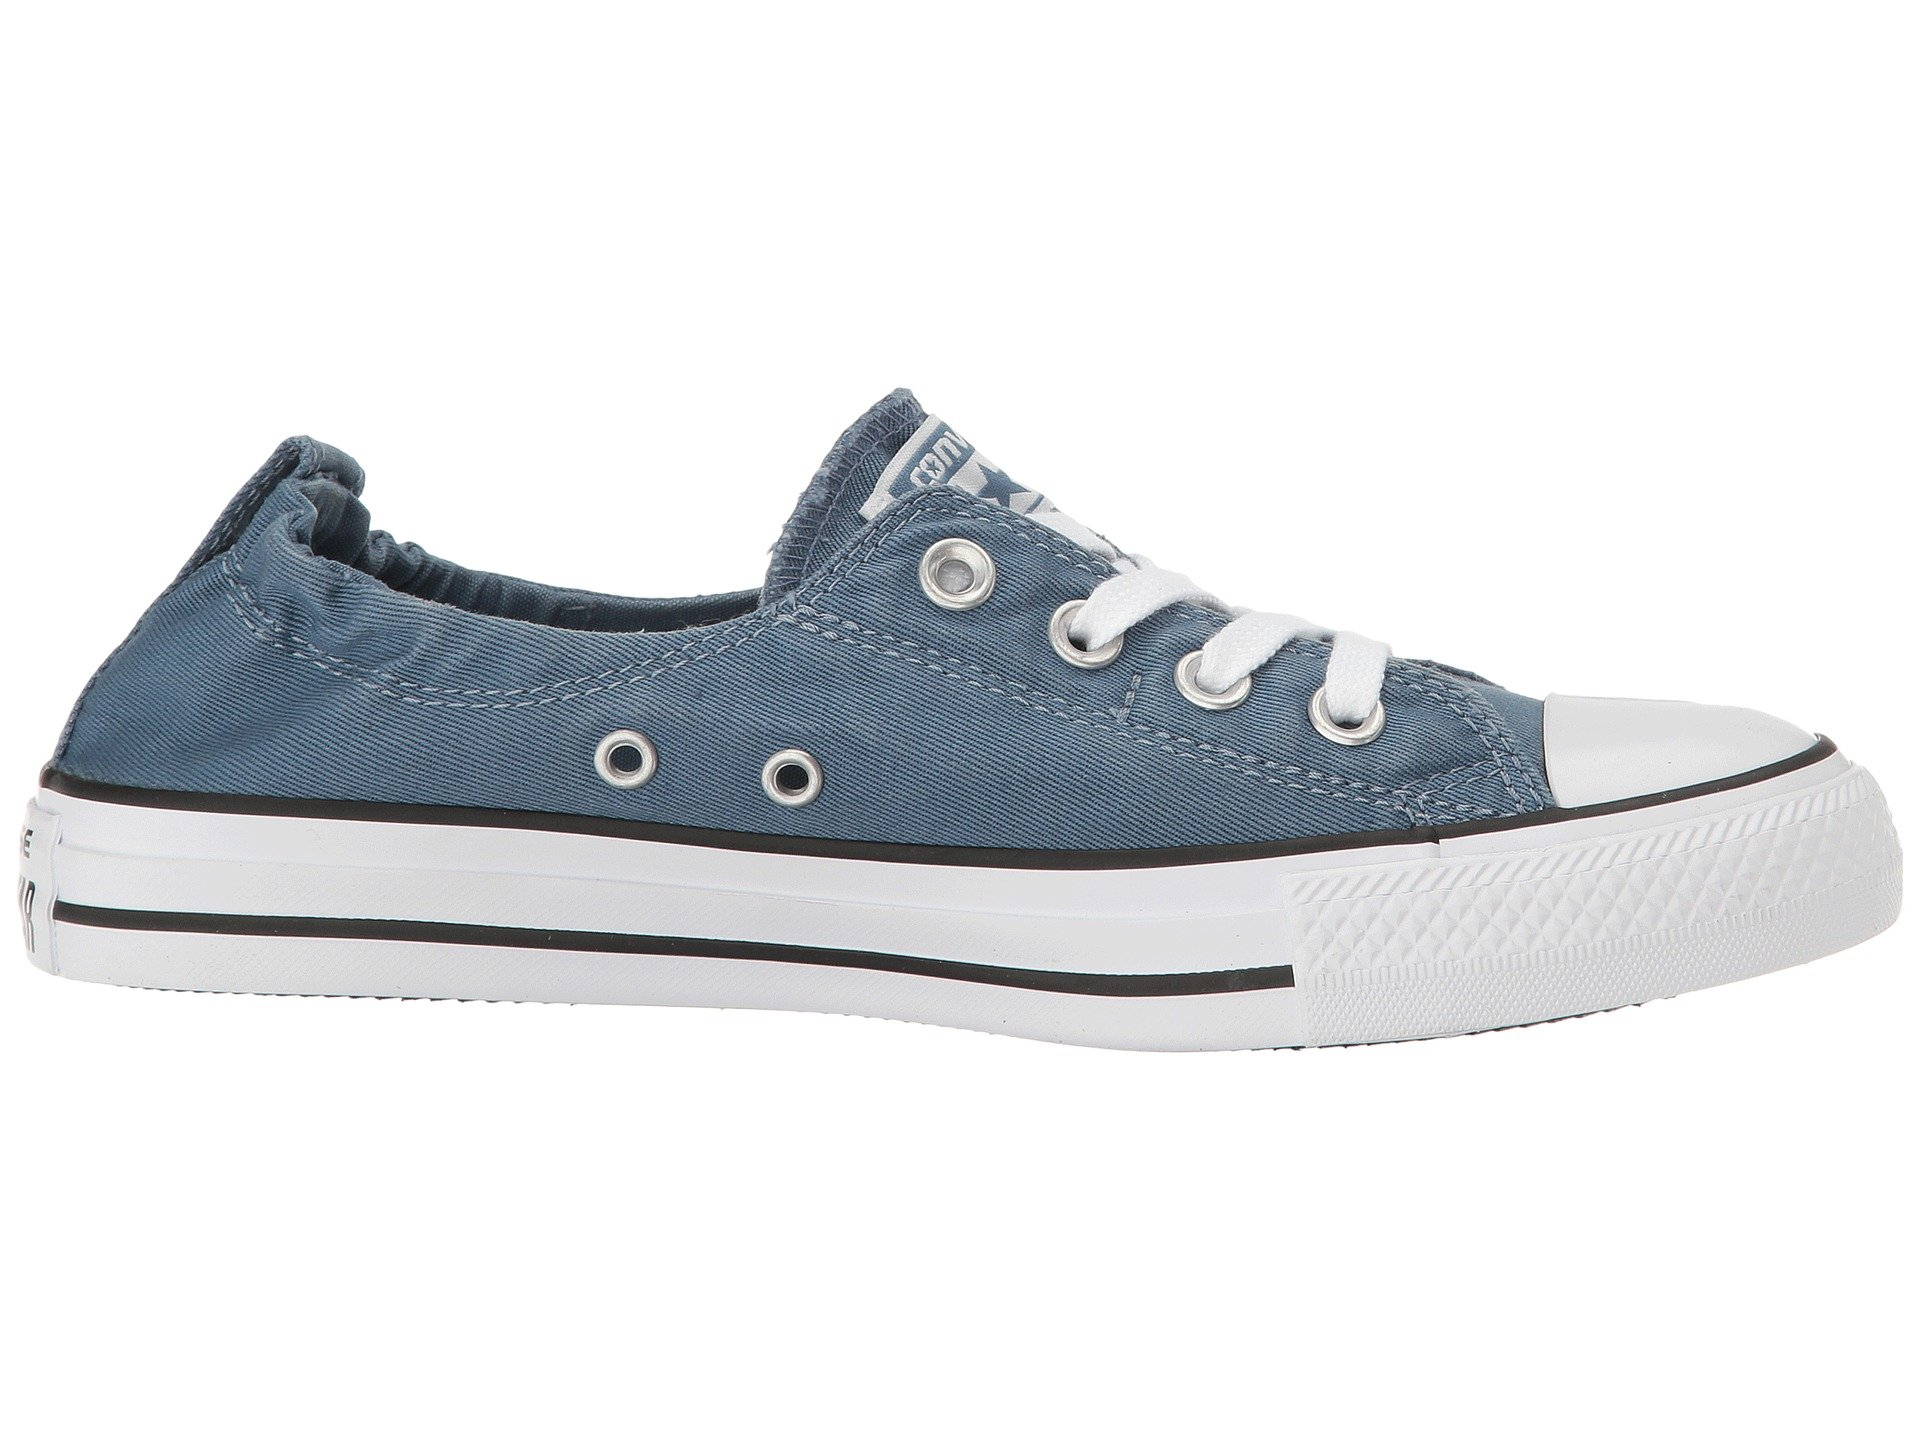 converse chuck taylor all star shoreline slip on ox